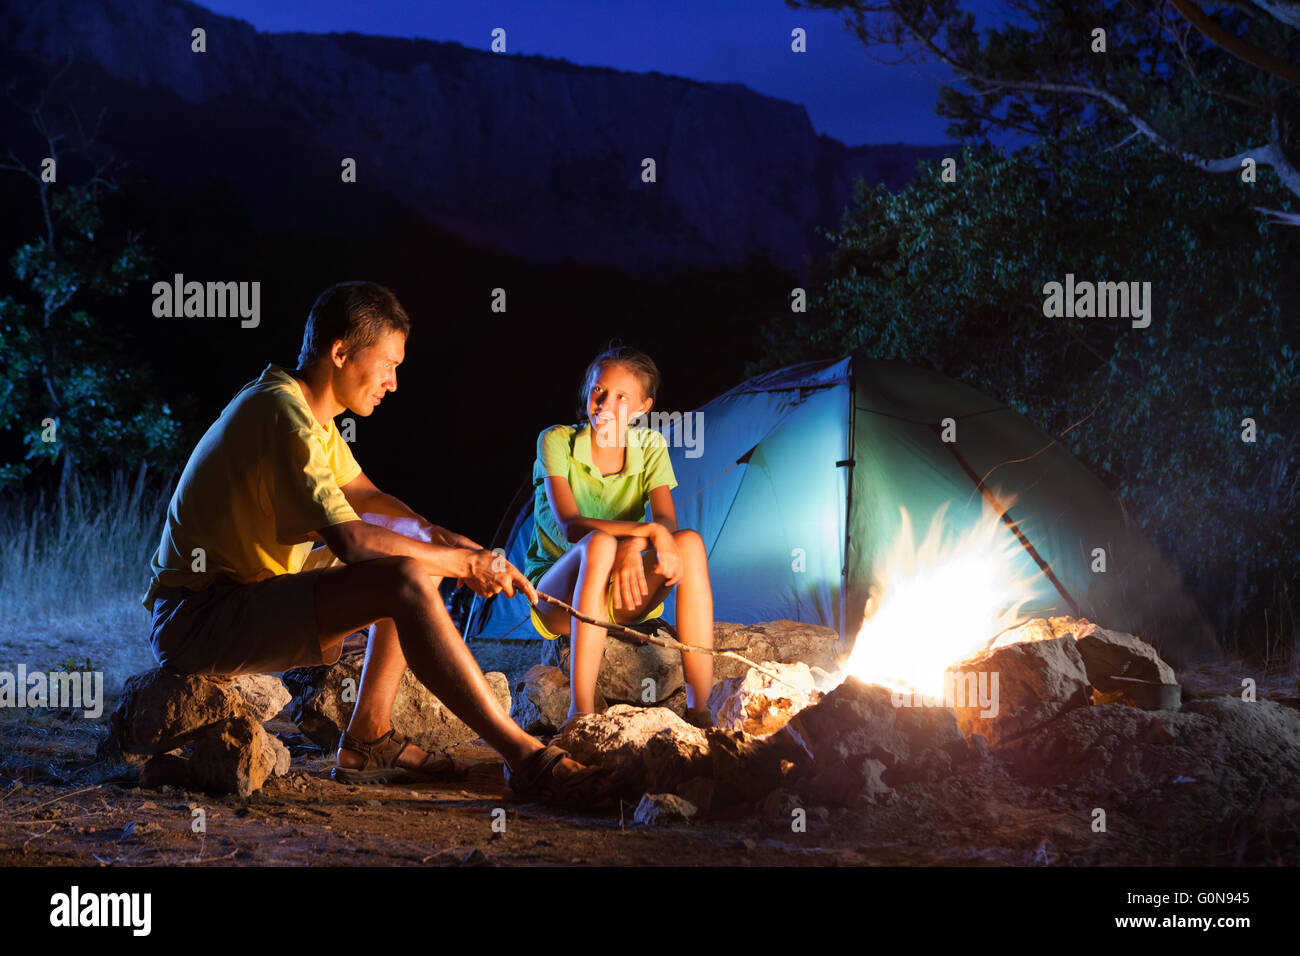 Camping with campfire at night - Stock Image